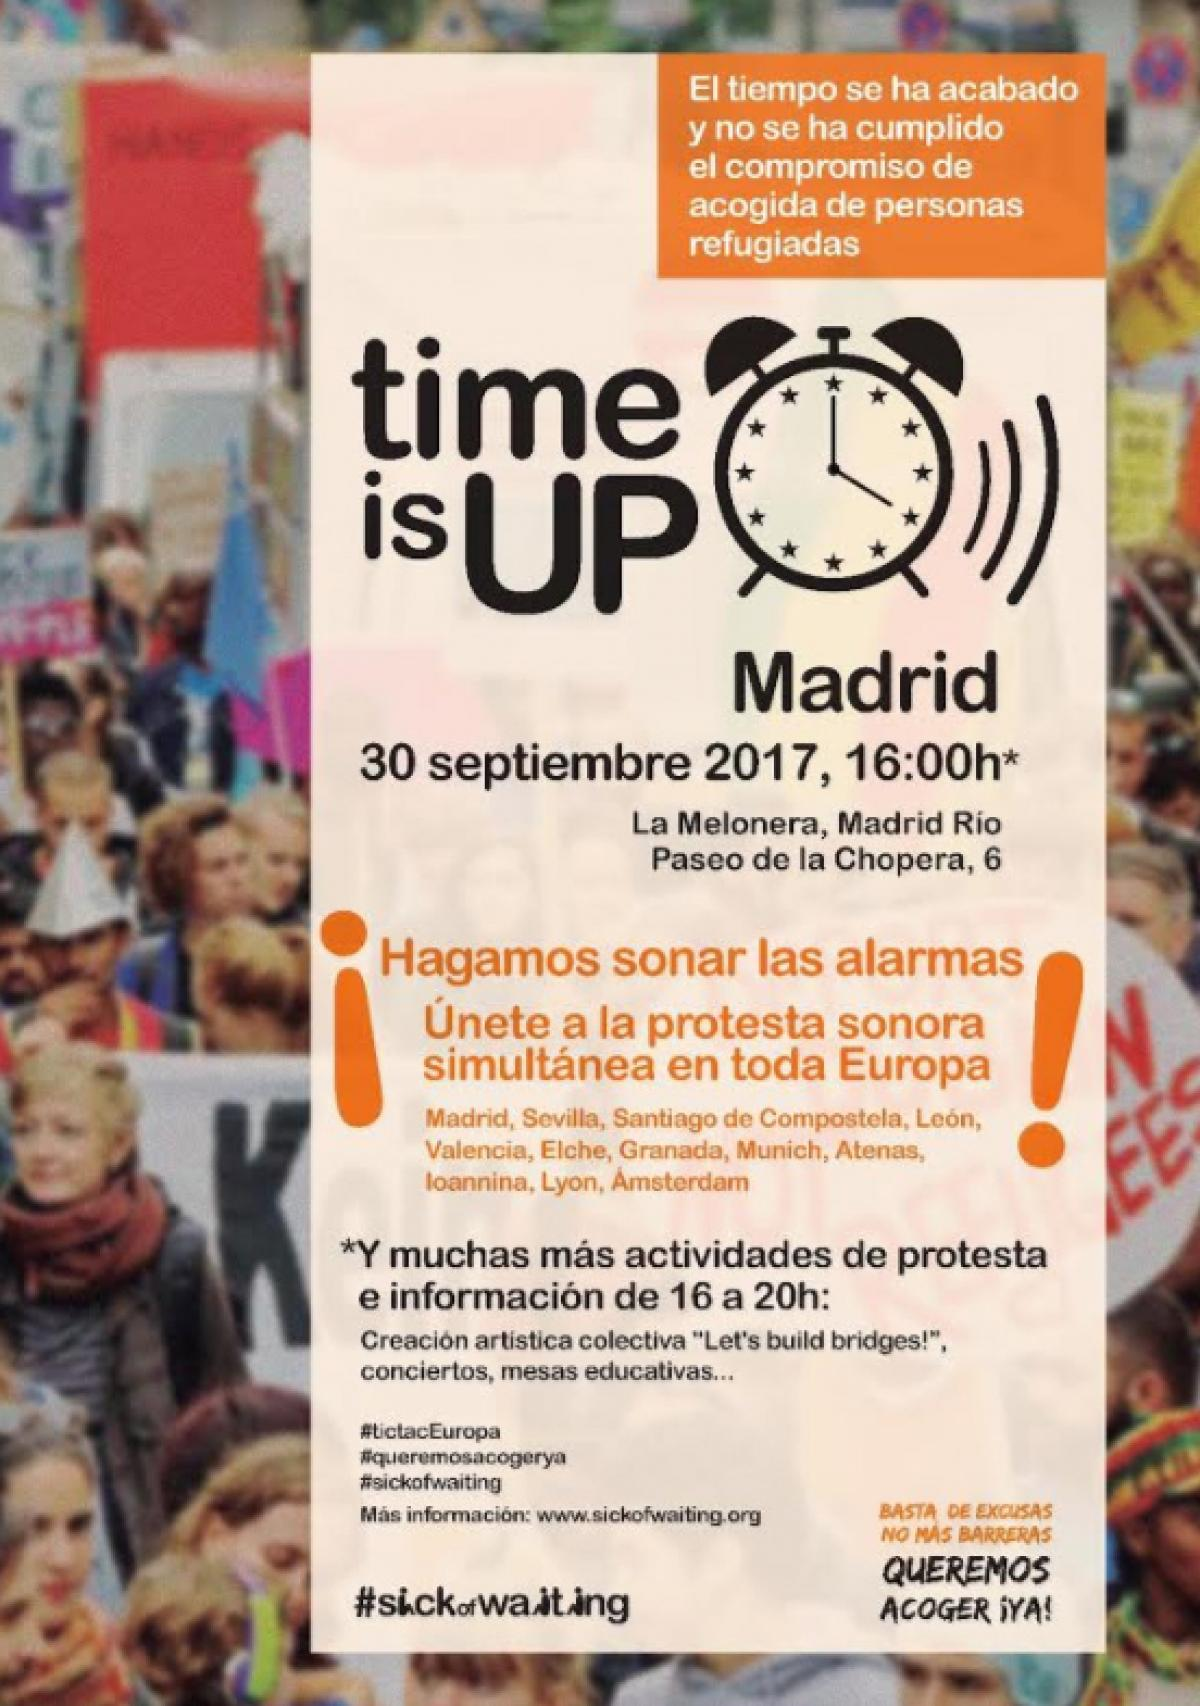 ¡El tiempo se ha acabado! / ¡Time is up!